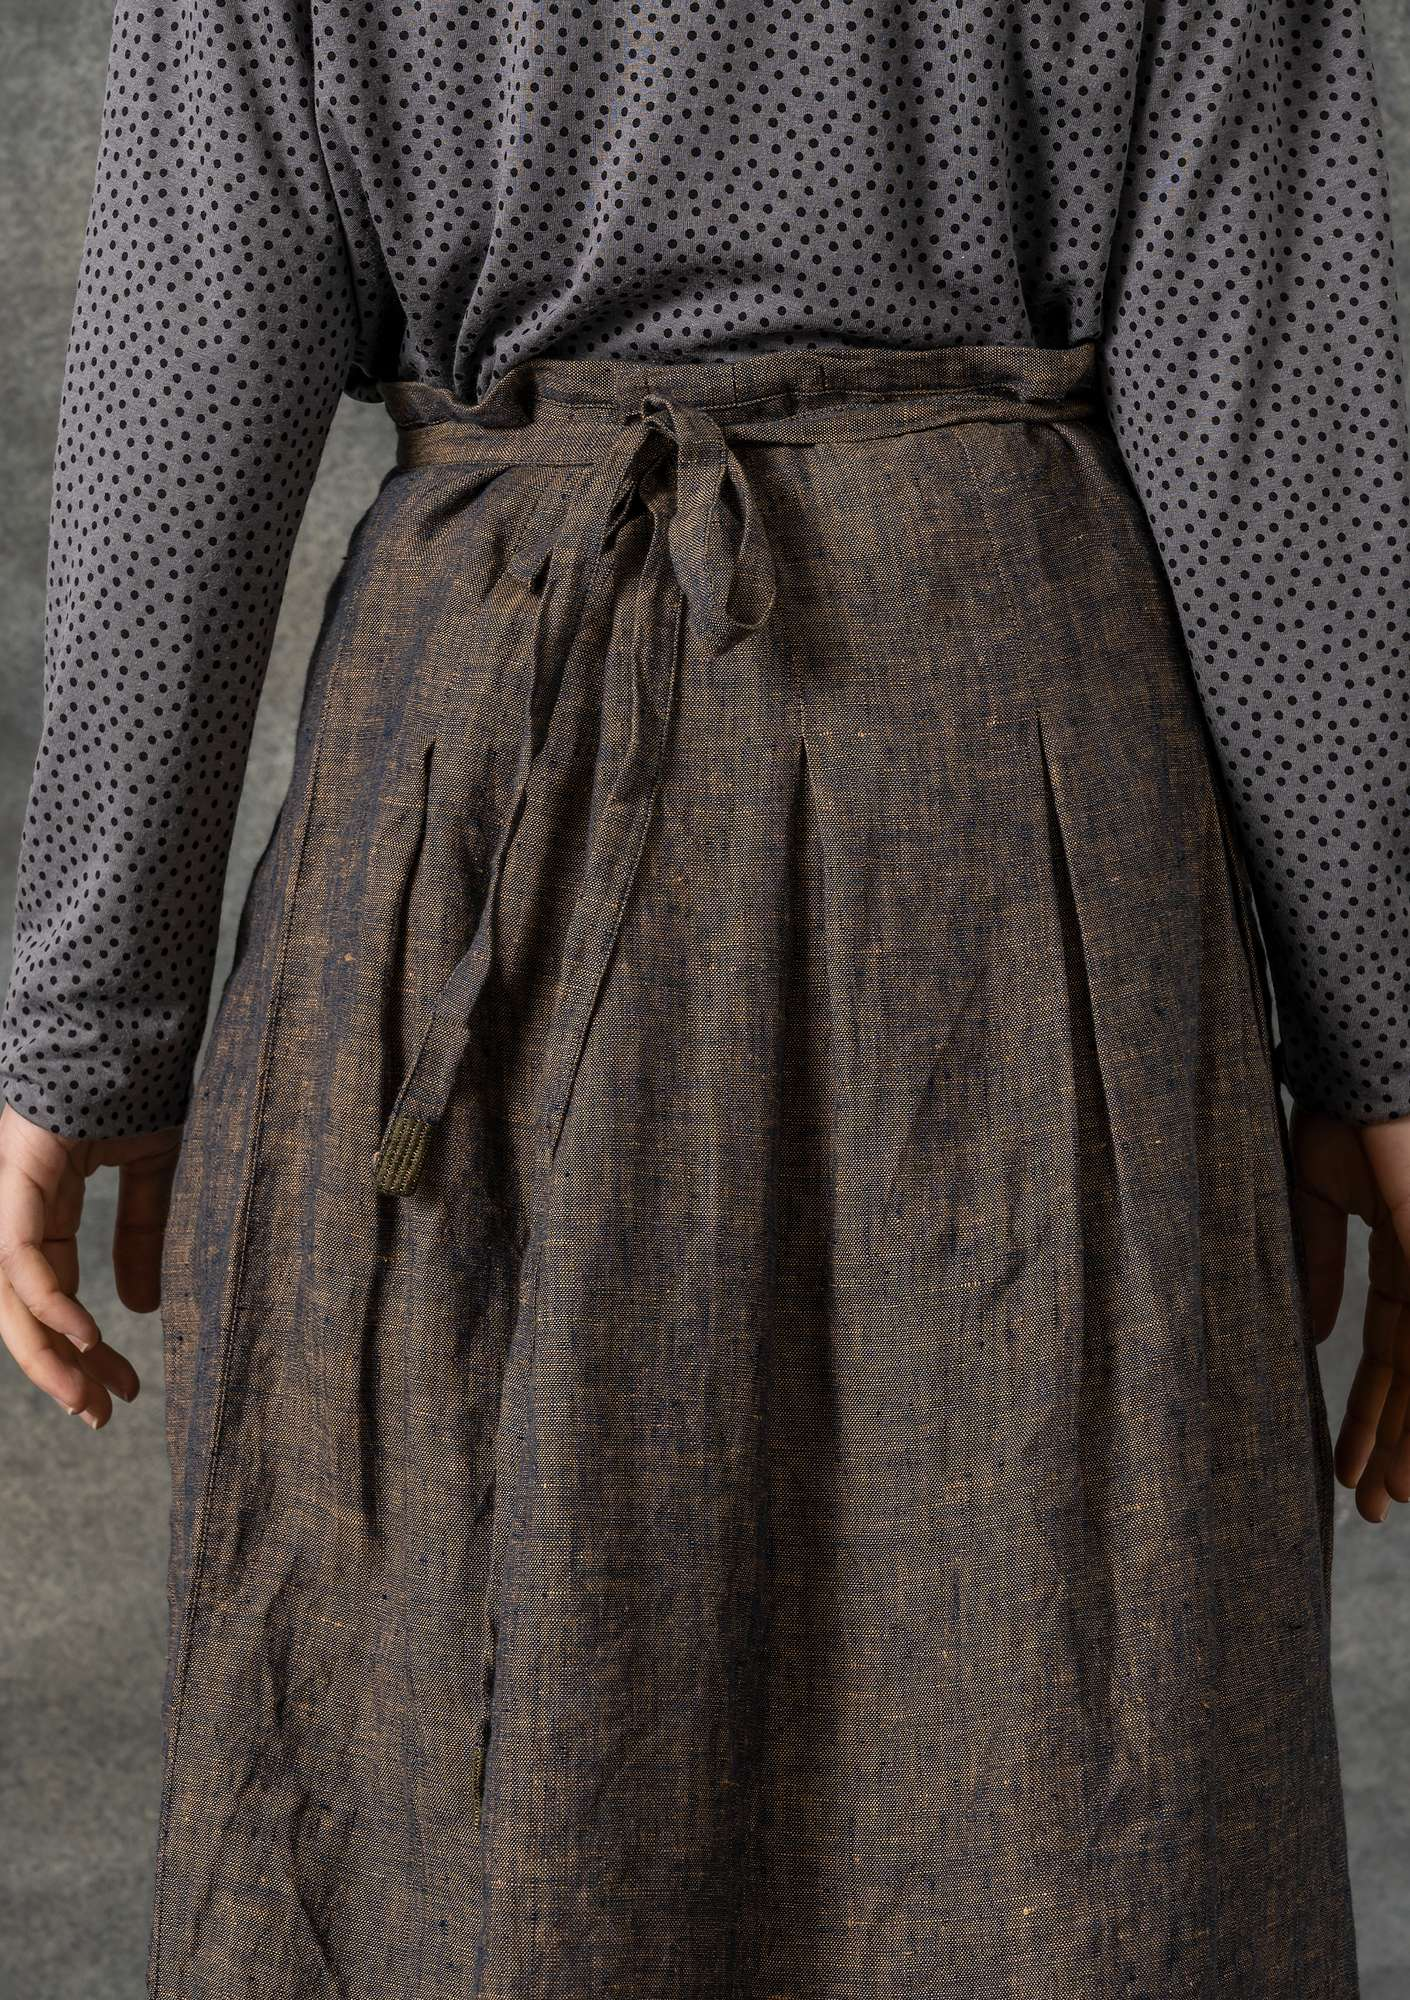 Wraparound skirt in linen chambrey clay